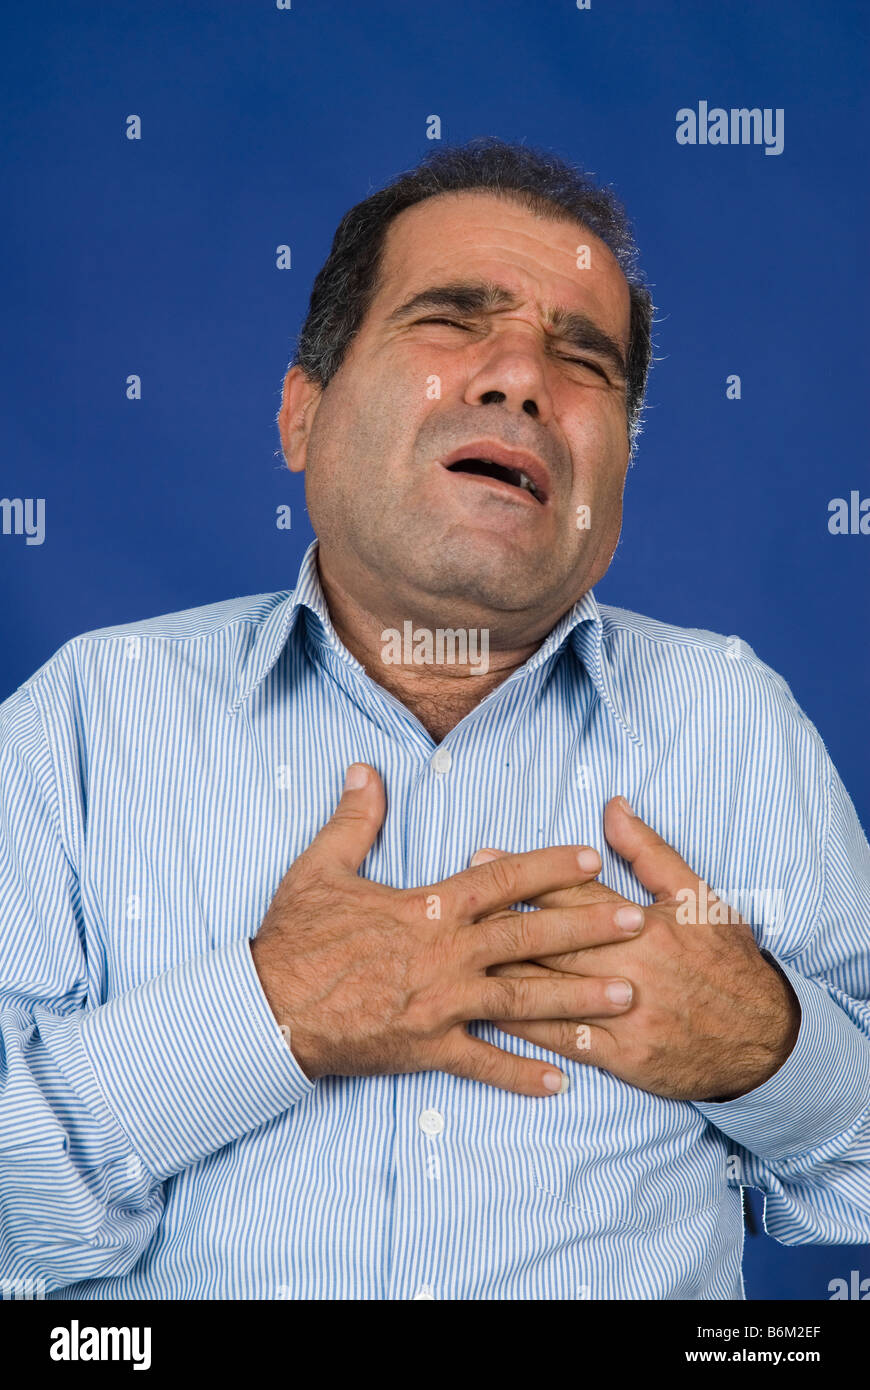 Man hands grabbing chest having a heart attack - Stock Image